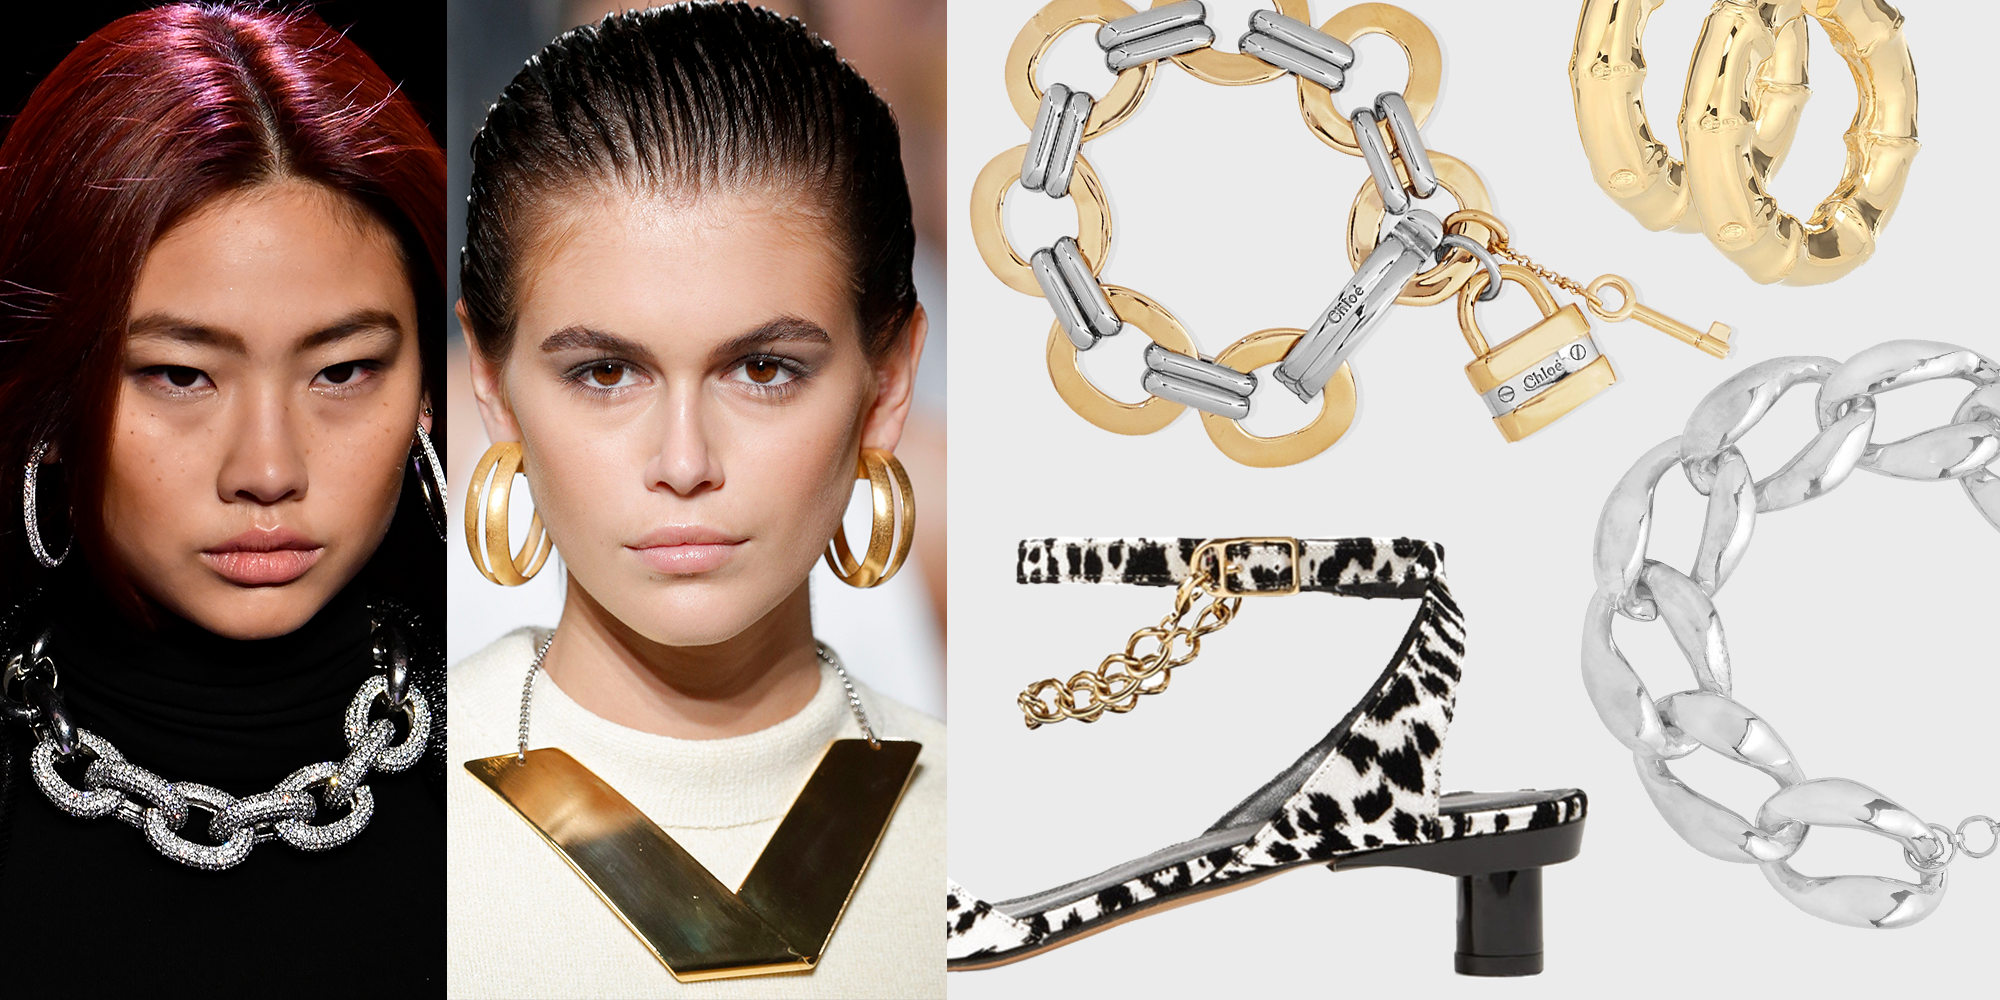 The Jewelry Trends You're Going to See Everywhere In 2020